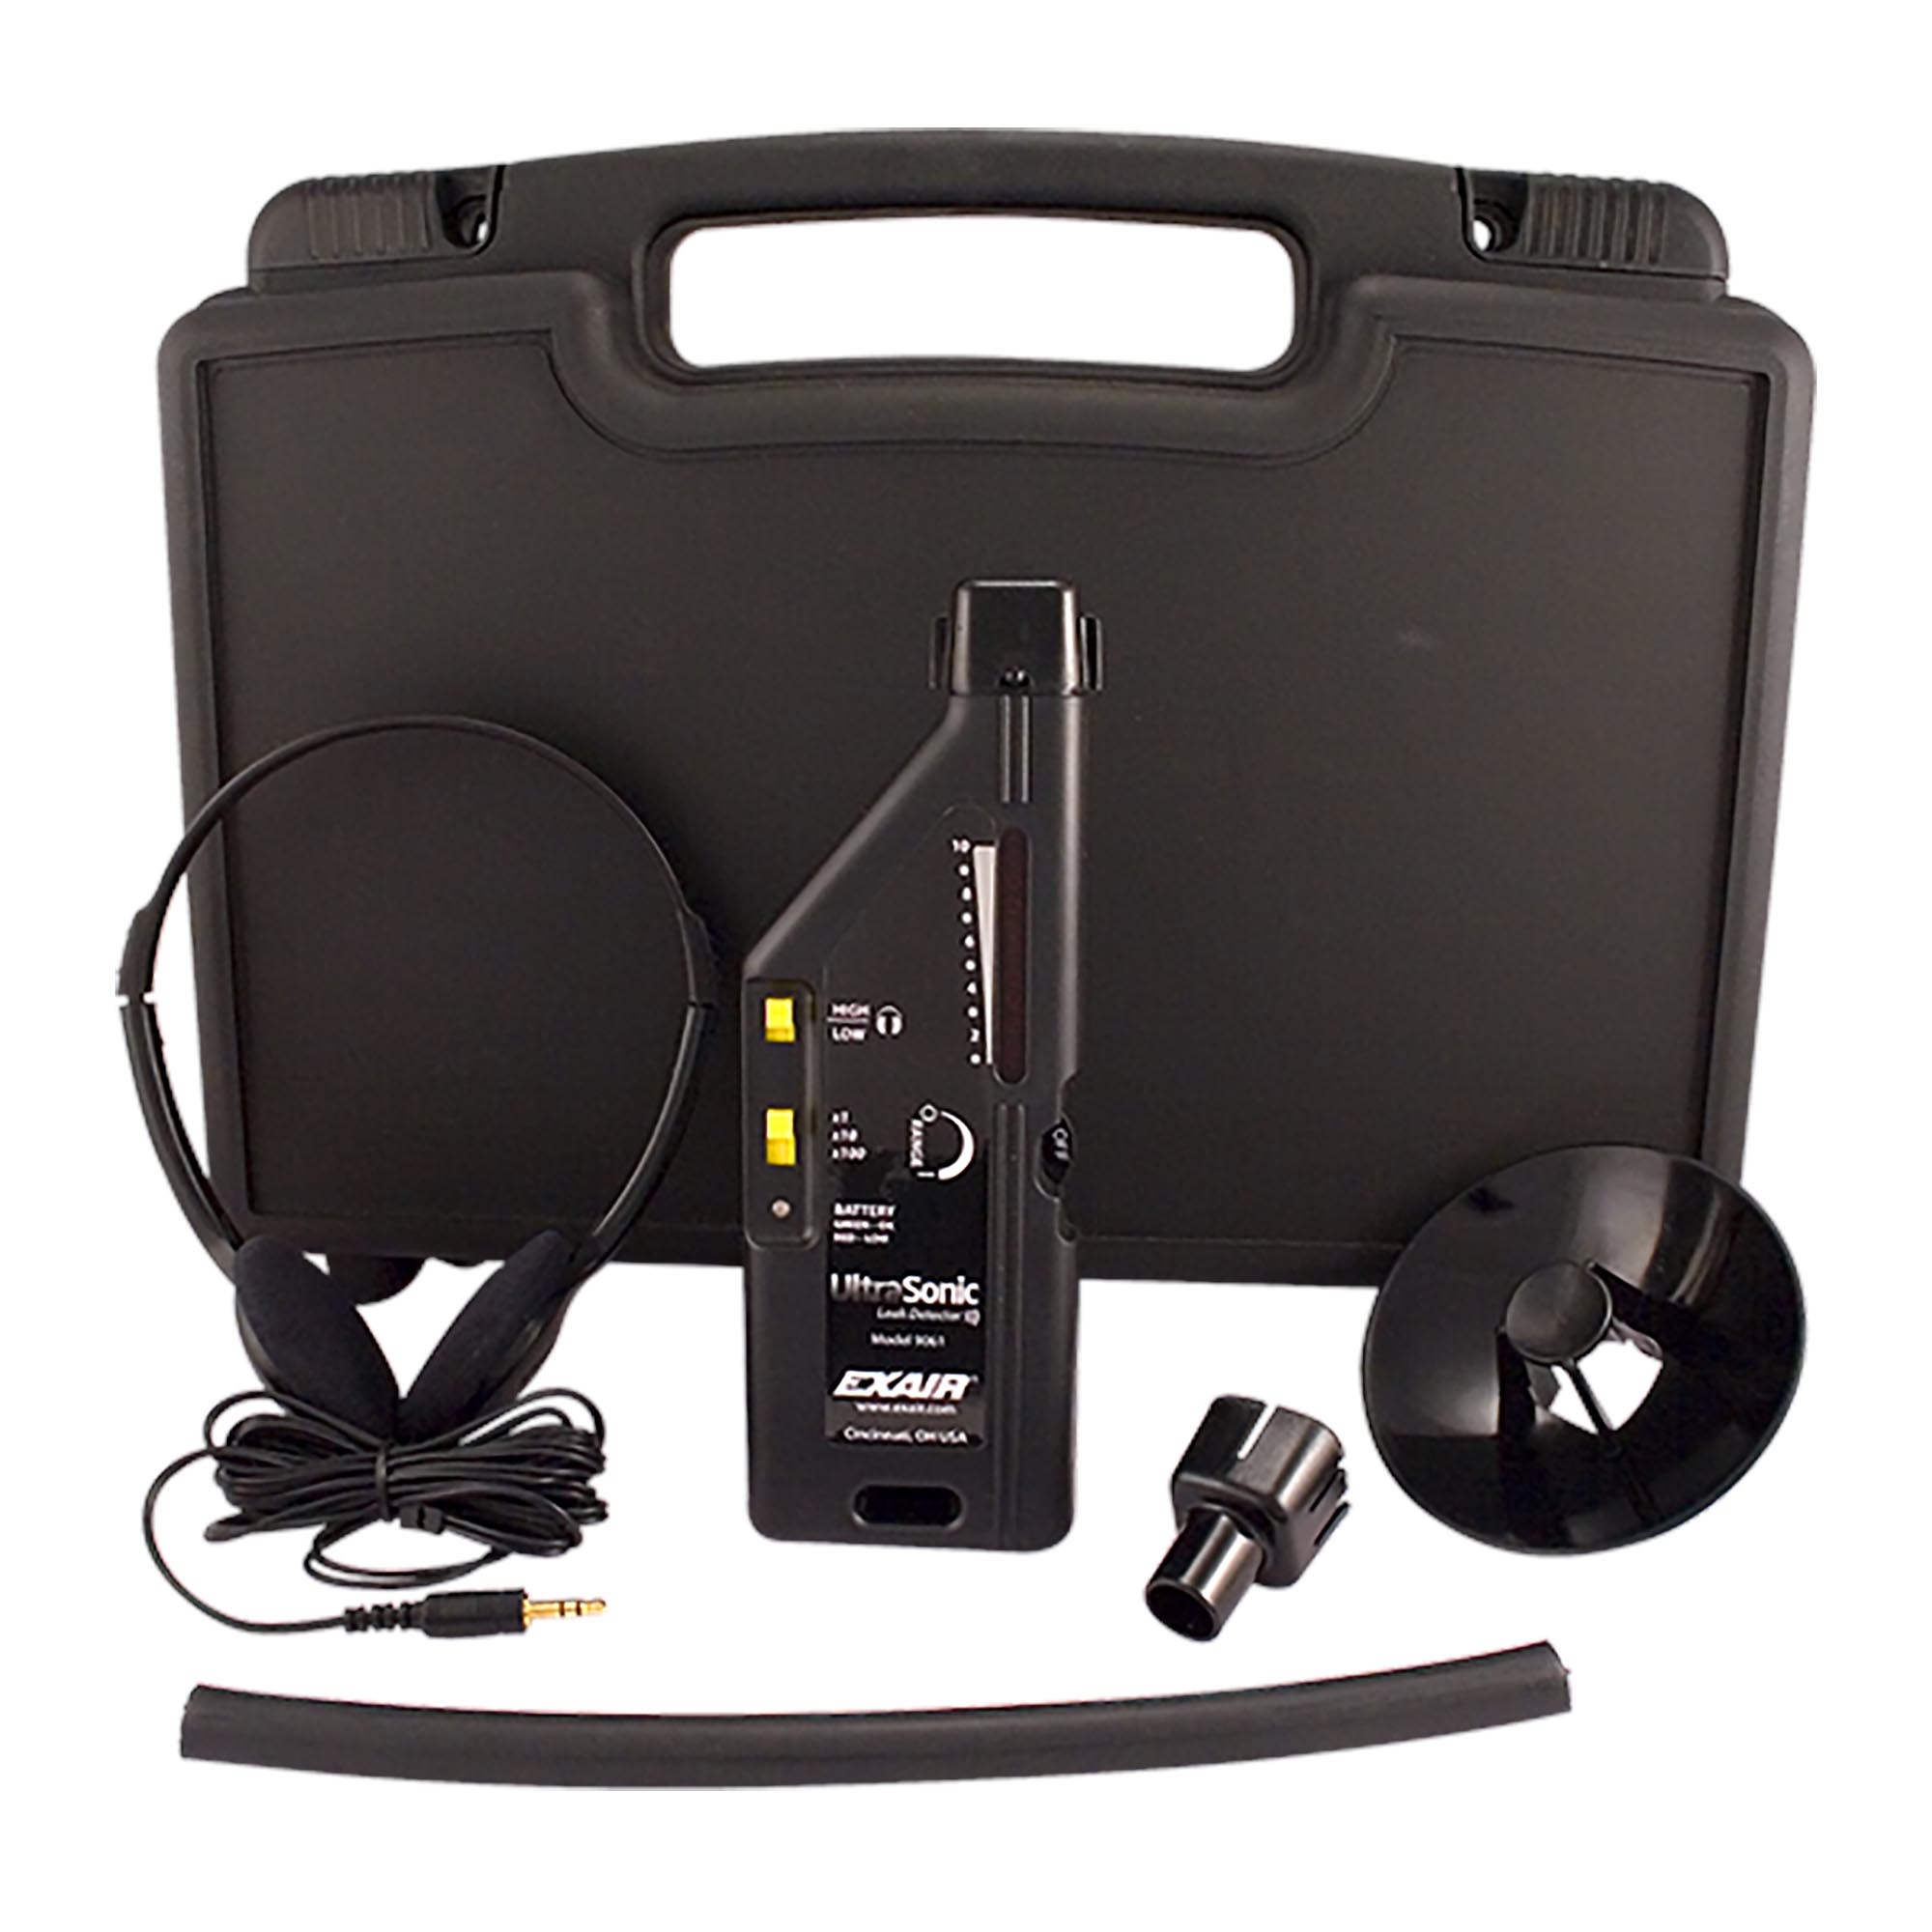 The full ULD system includes ULD, attachments, headphones, and 9 volt battery